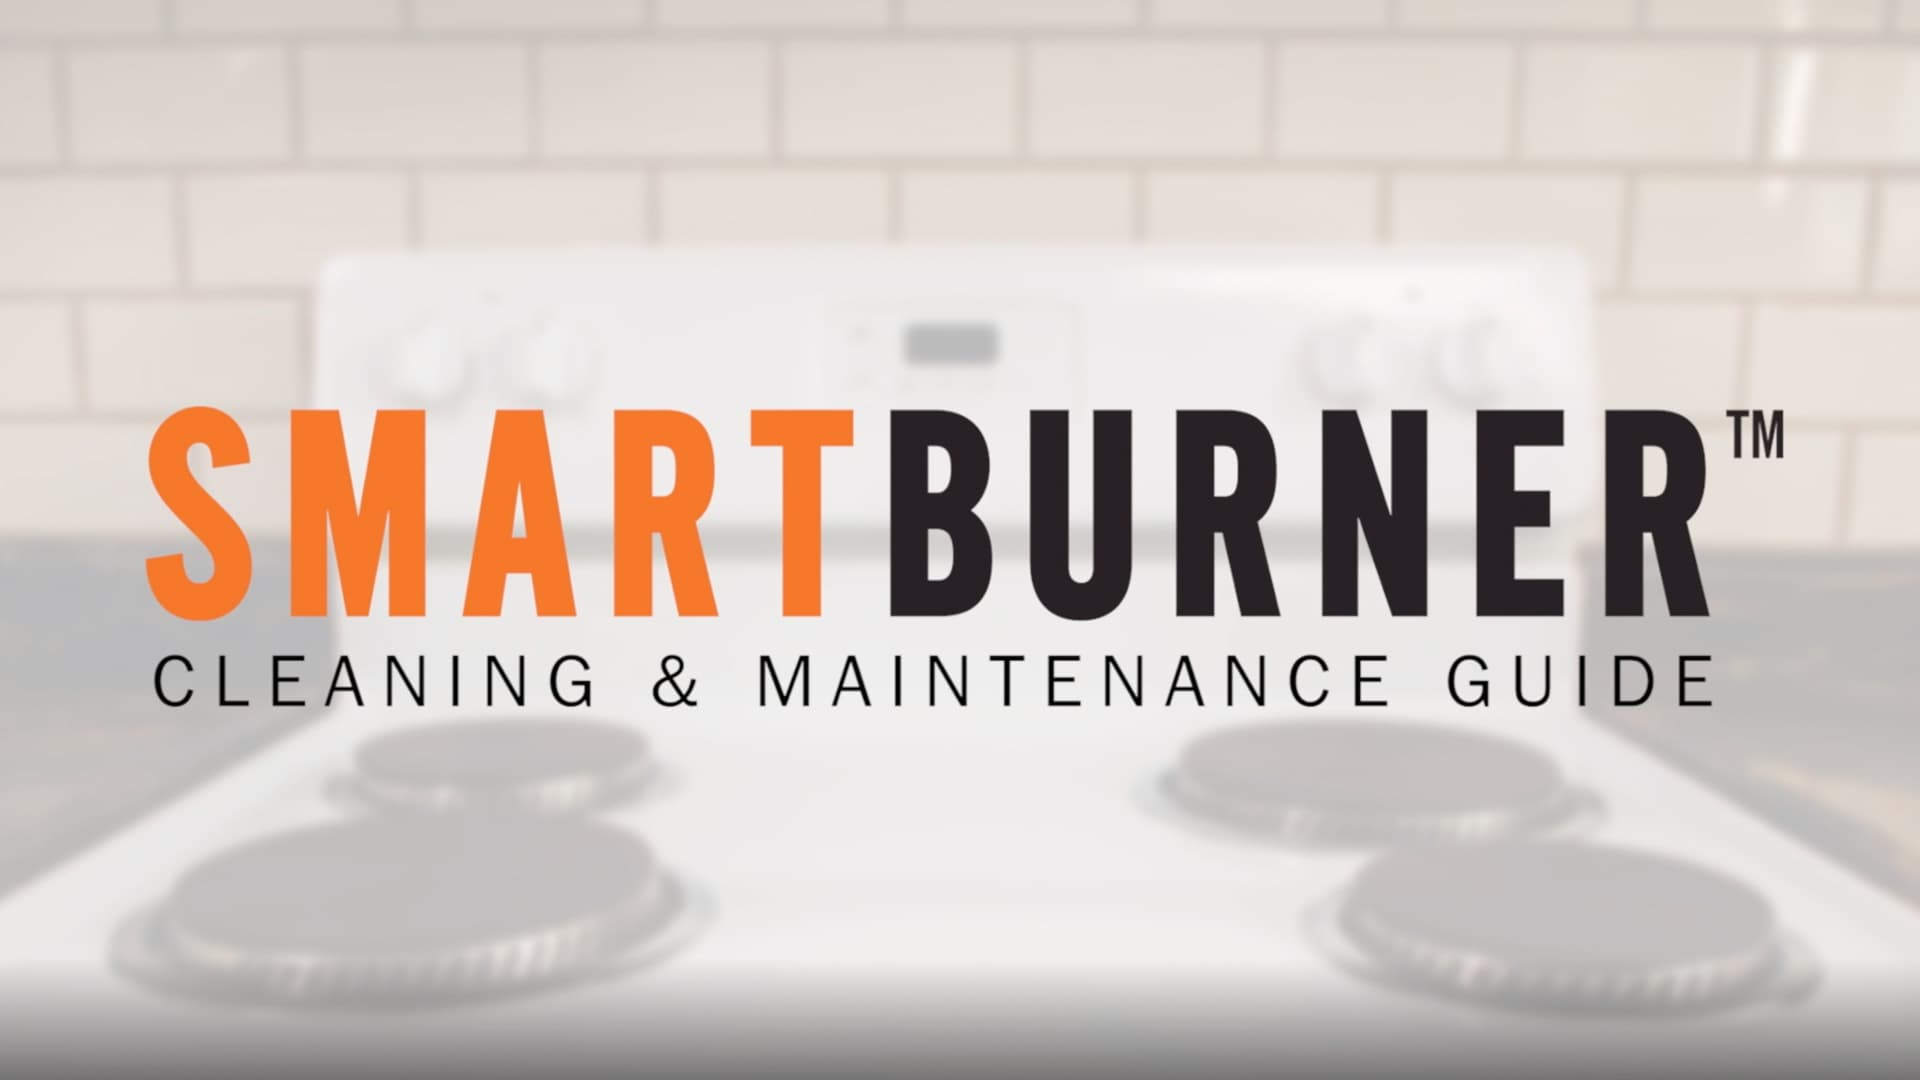 SmartBurner™ cleaning and maintenance guide